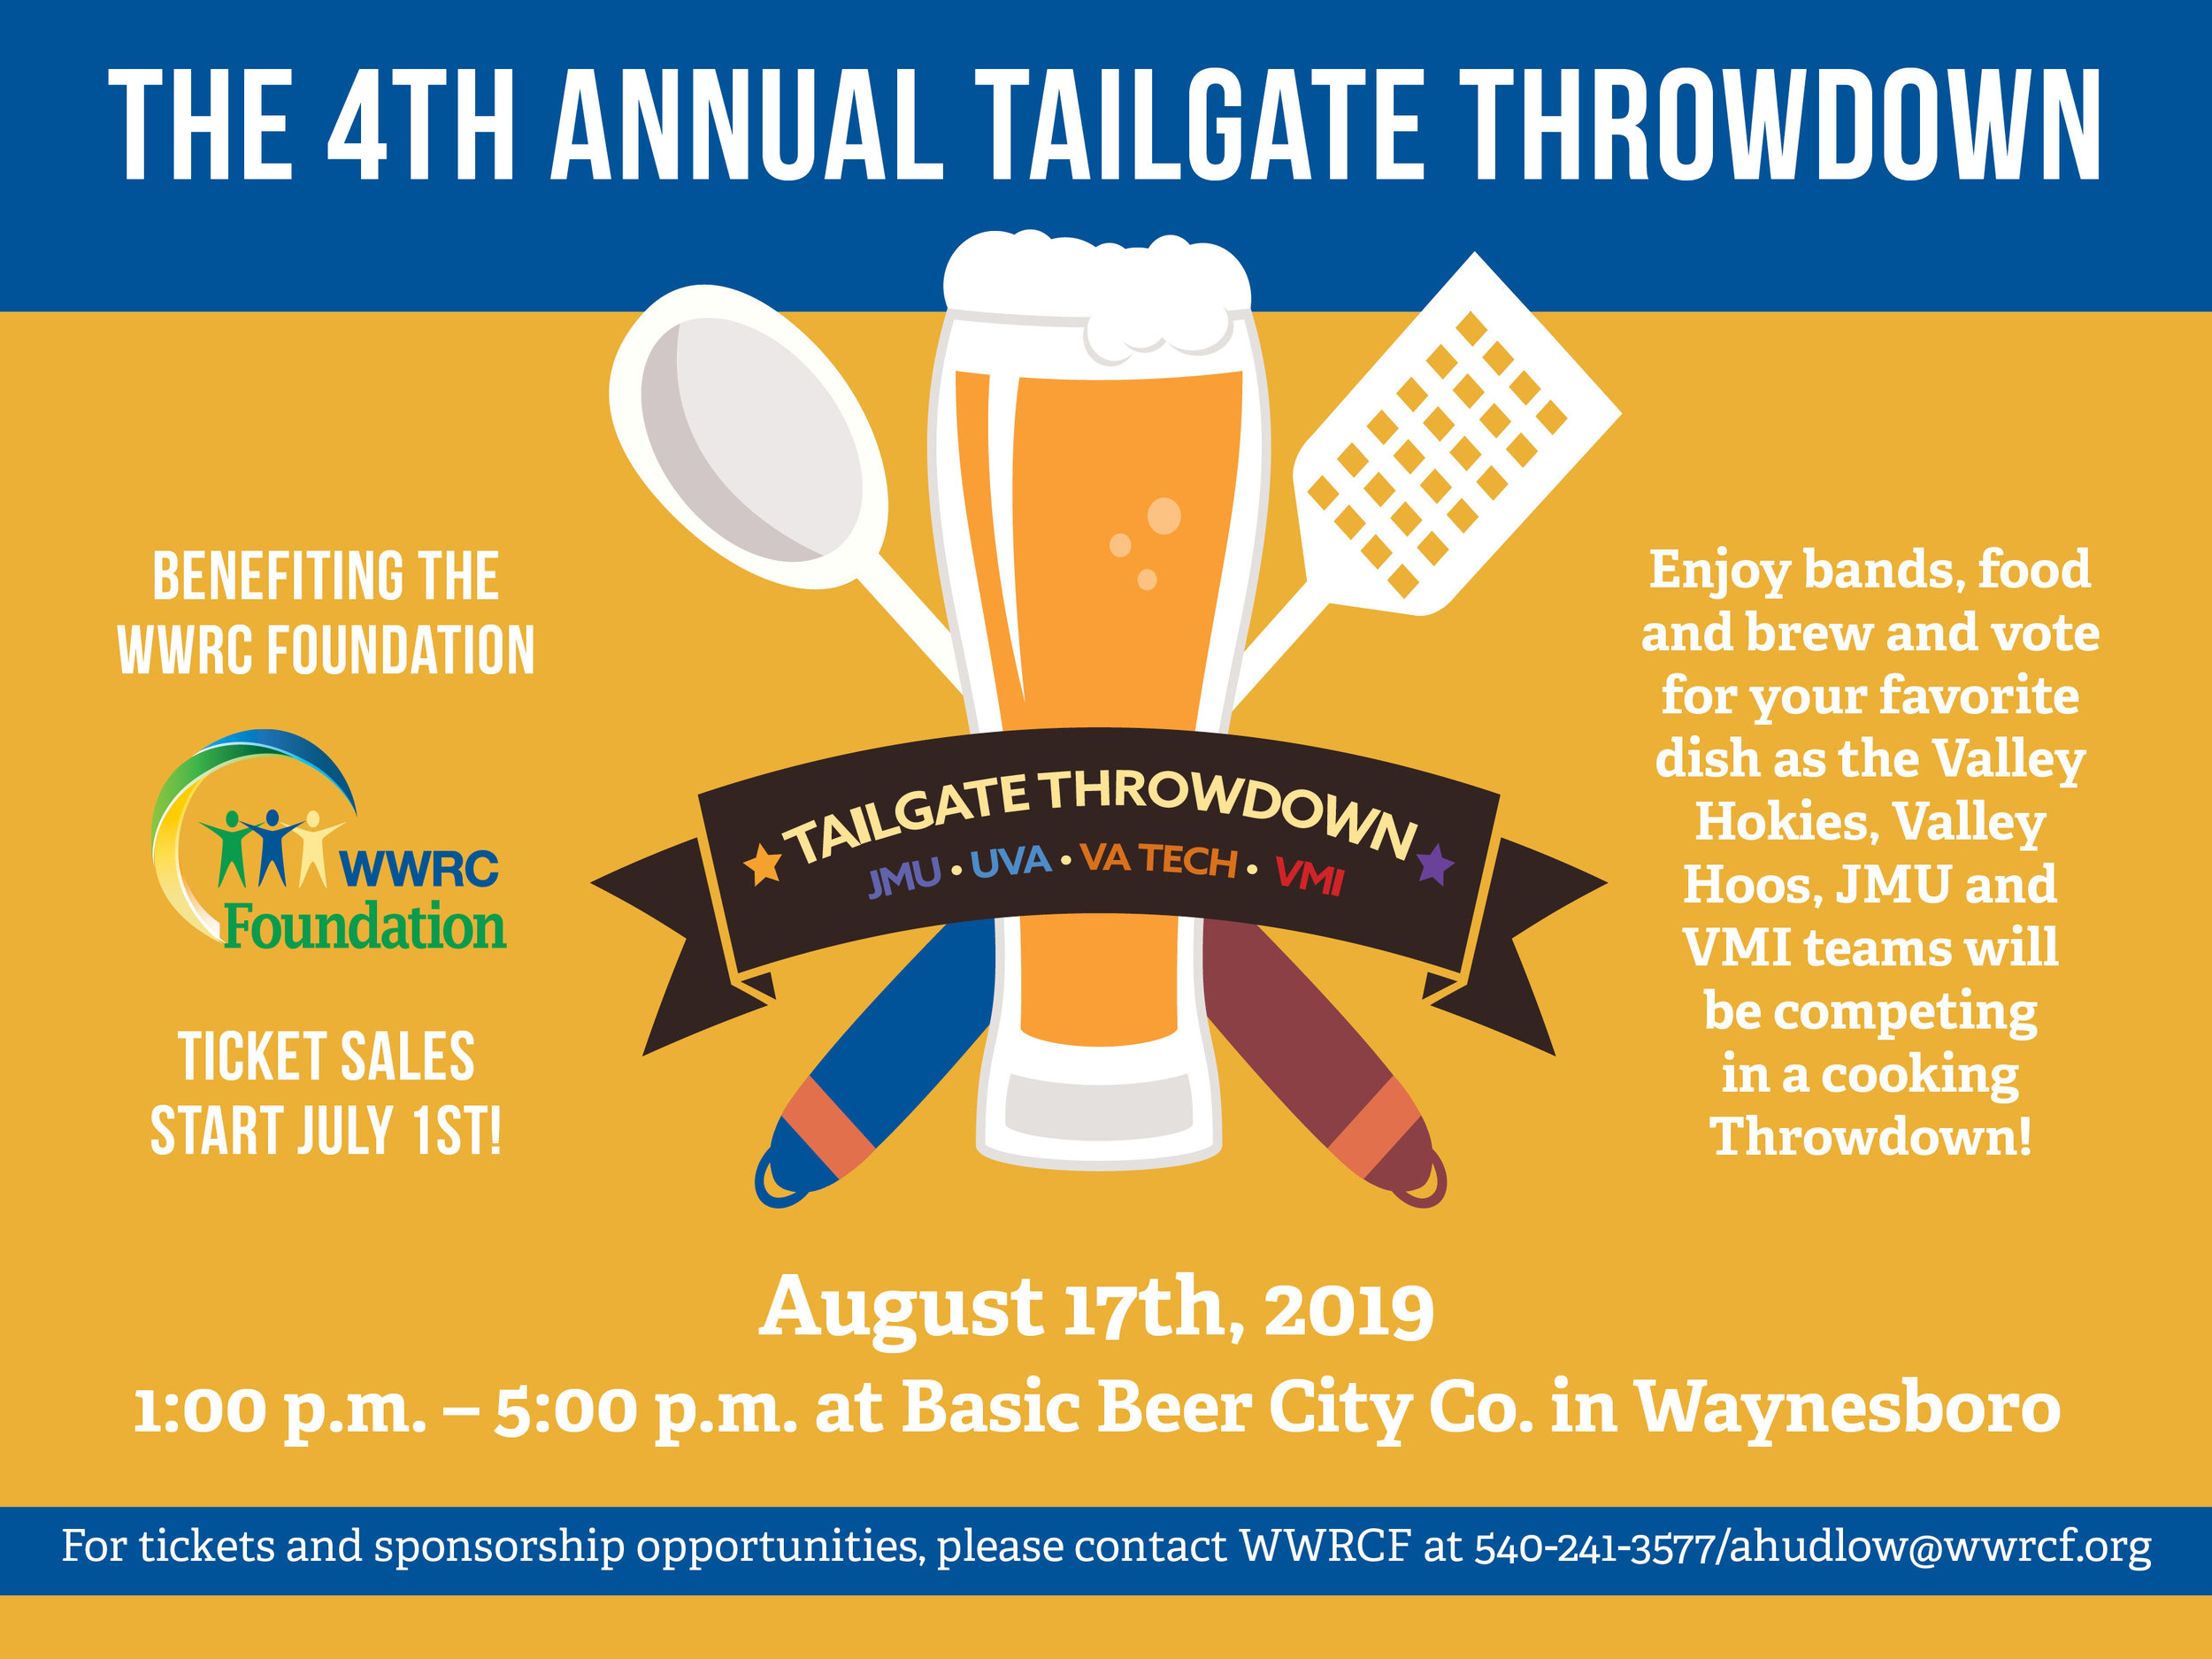 Tailgate Throwdown Save the Date 2019.jpg